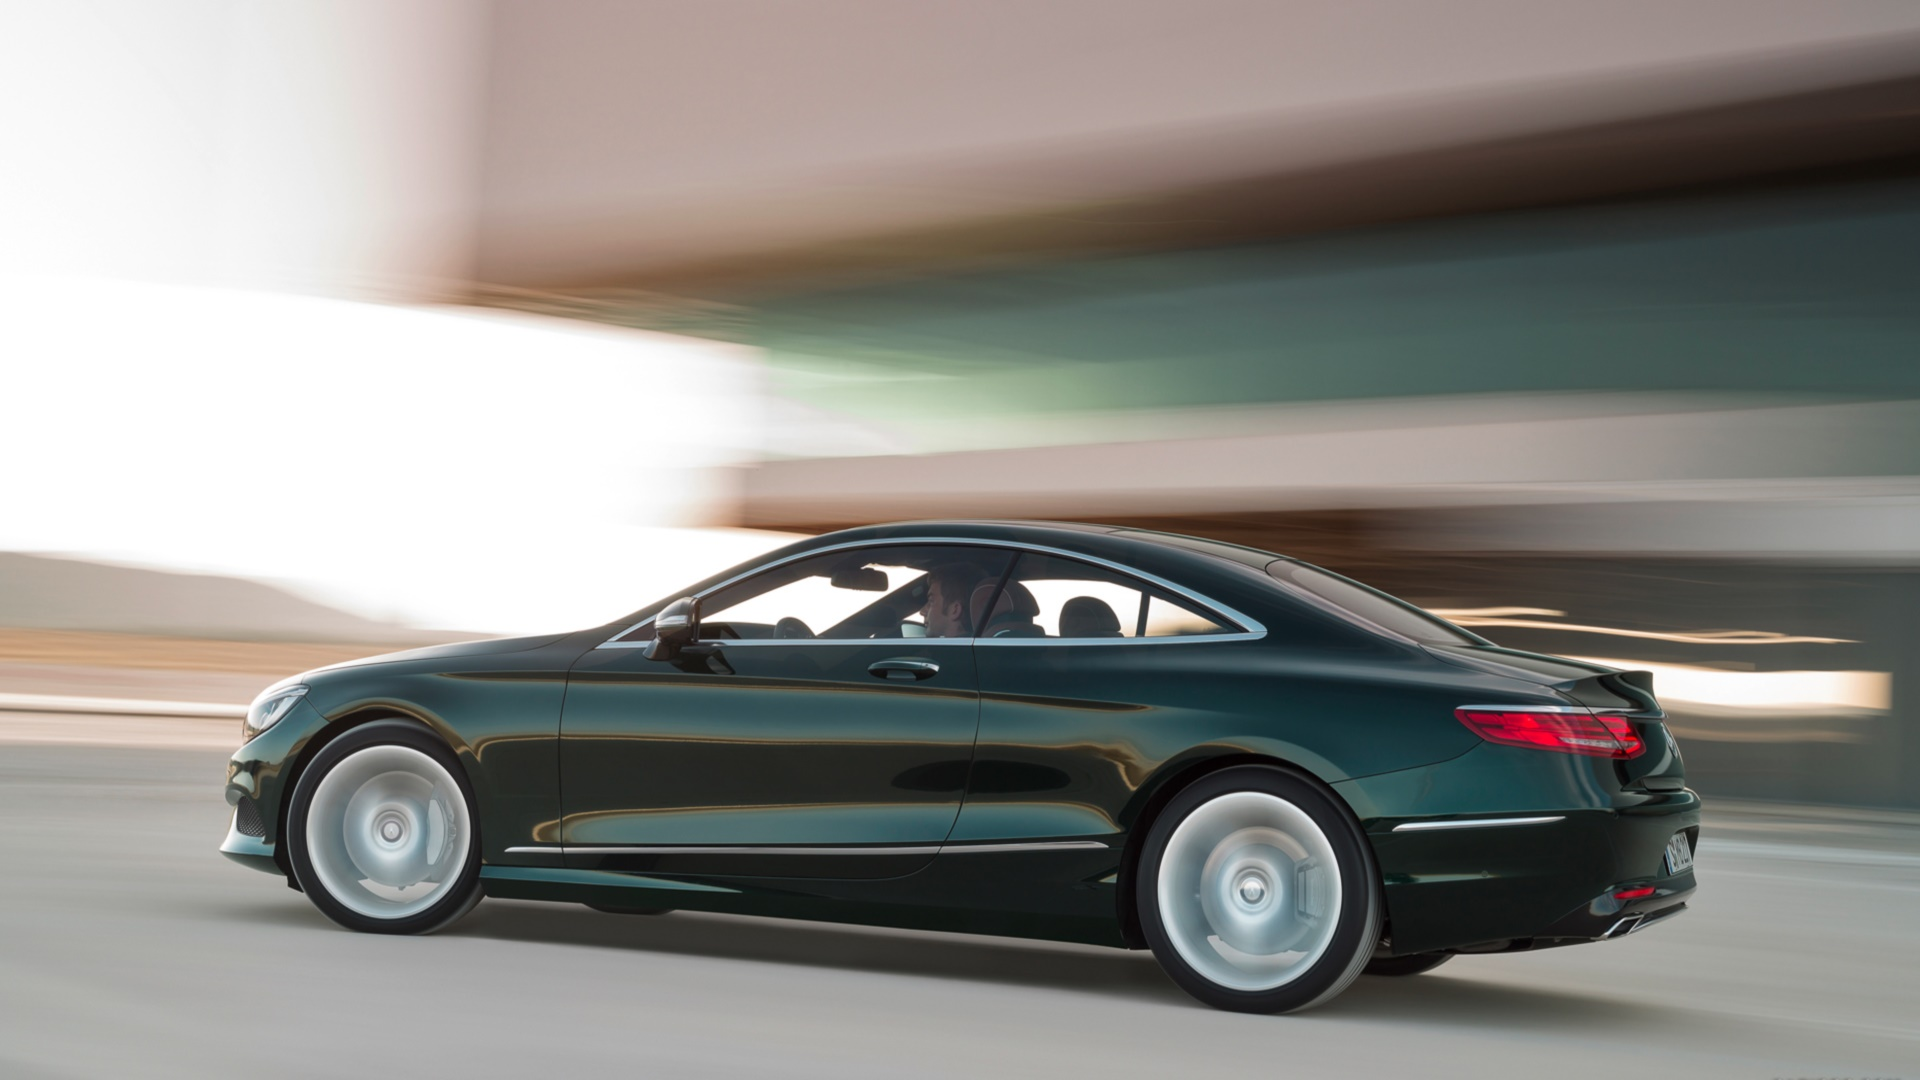 Mercedes benz s class coupe wallpapers pictures images for 1920 mercedes benz